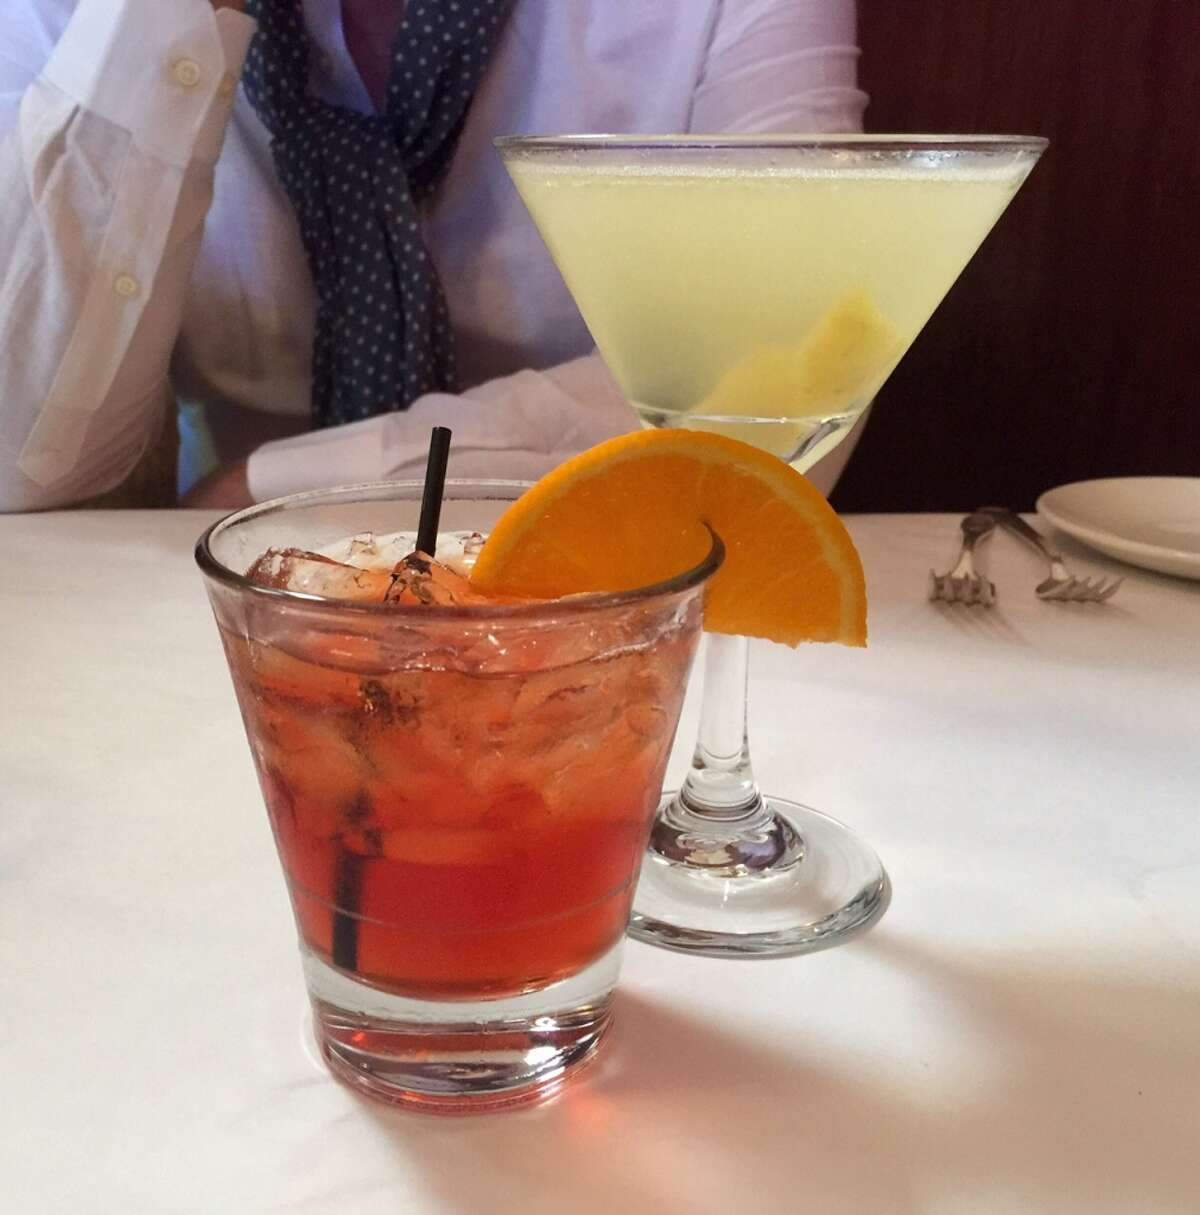 Cocktails, which are at the heart of the experience at the Elite Cafe, include the Boulevardier ($11) and the Corpse Reviver 2 ($12).